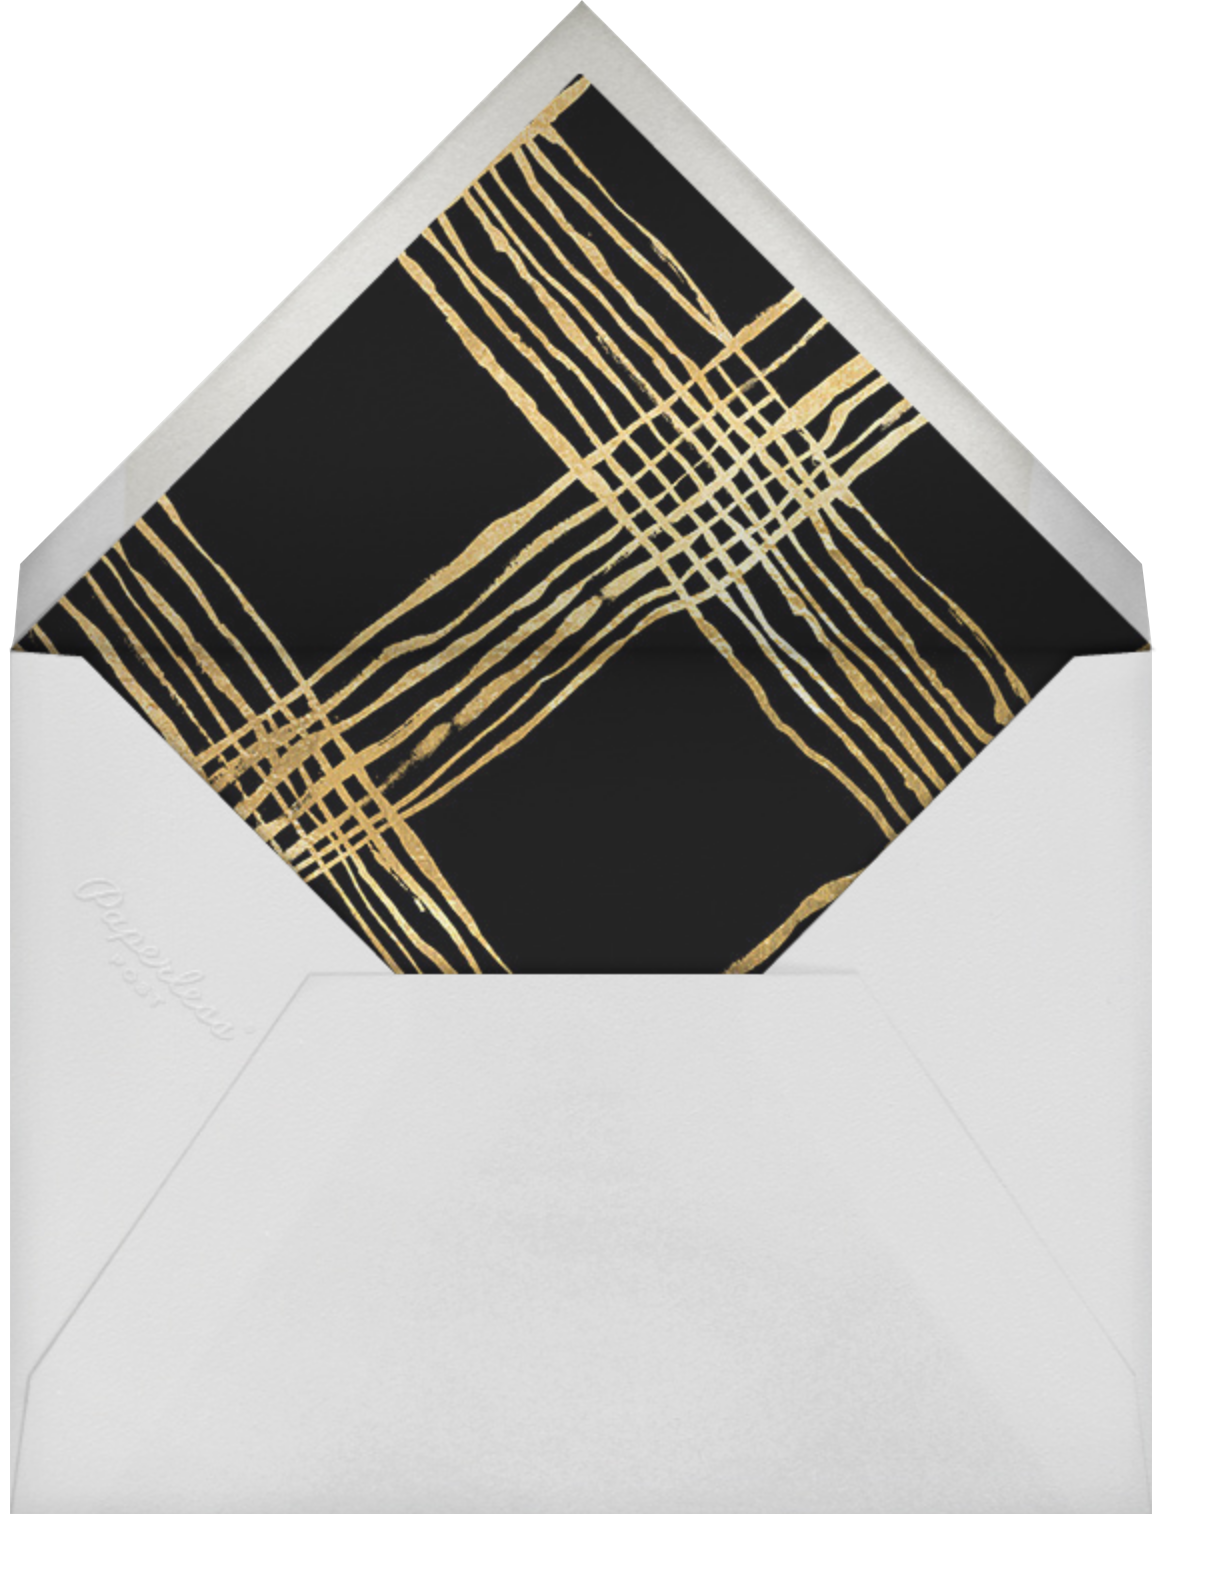 Juxtapose - Kelly Wearstler - Professional events - envelope back